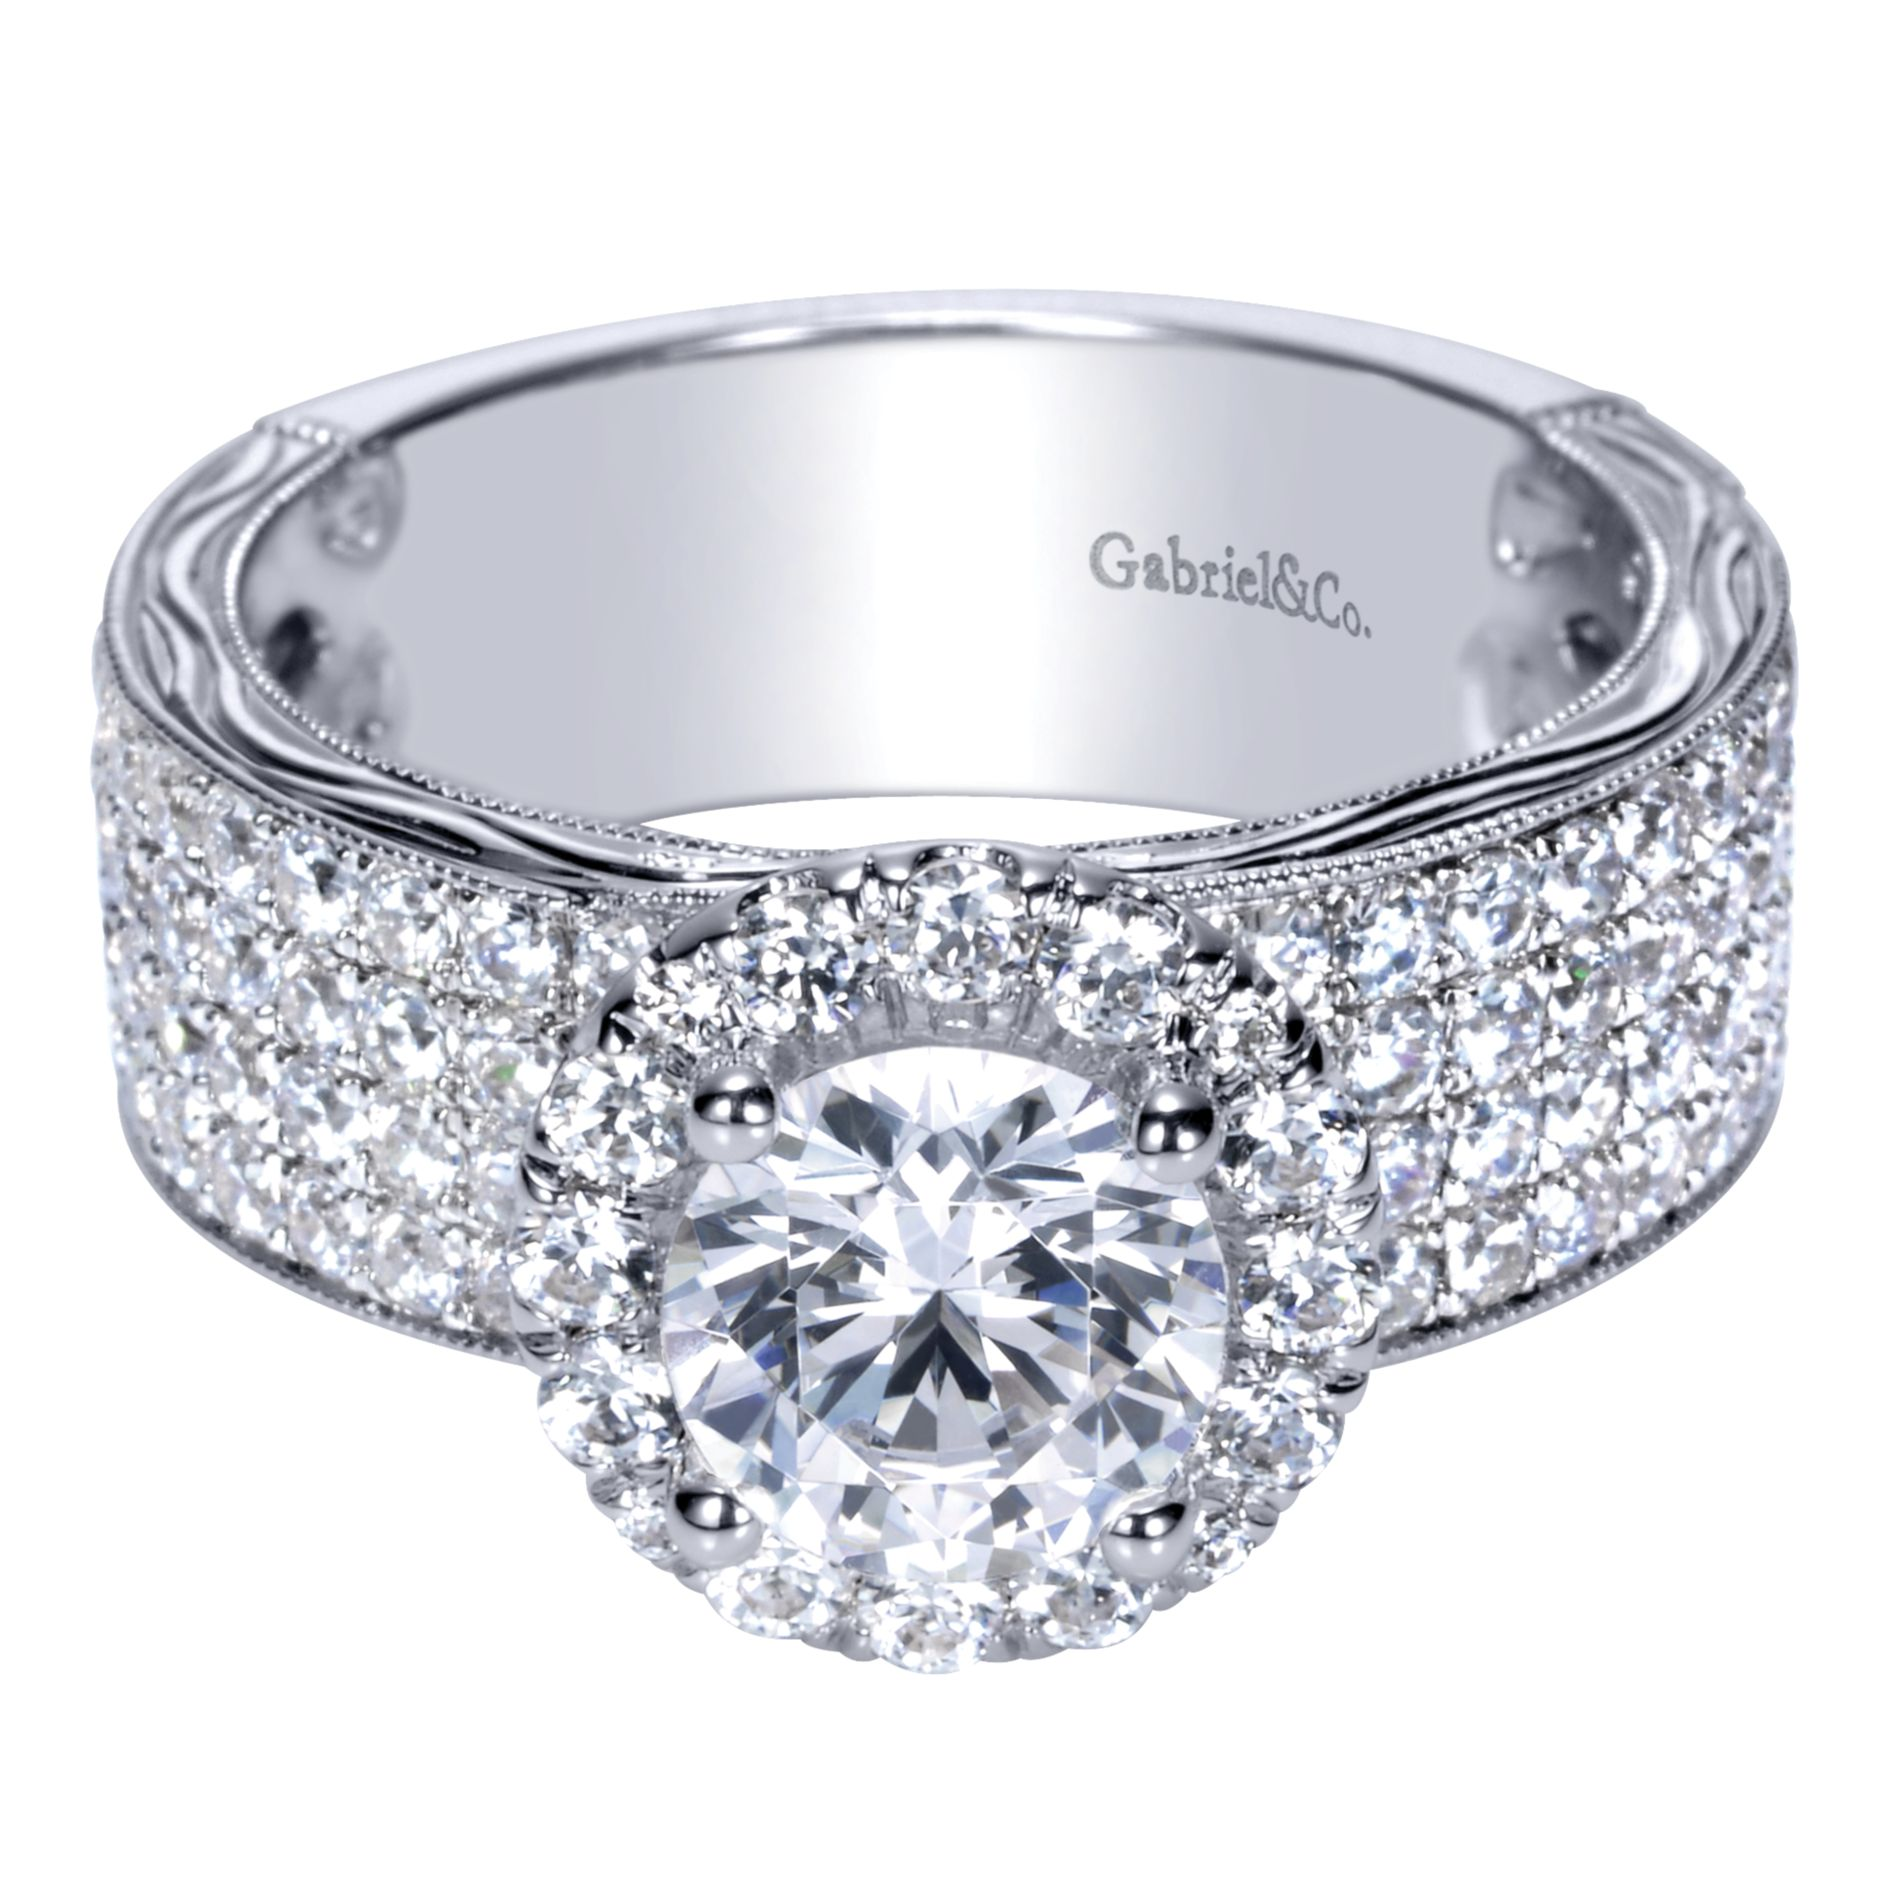 WHITE GOLD ROUND HALO DIAMOND ENGAGEMENT RING by Gabriel & Co